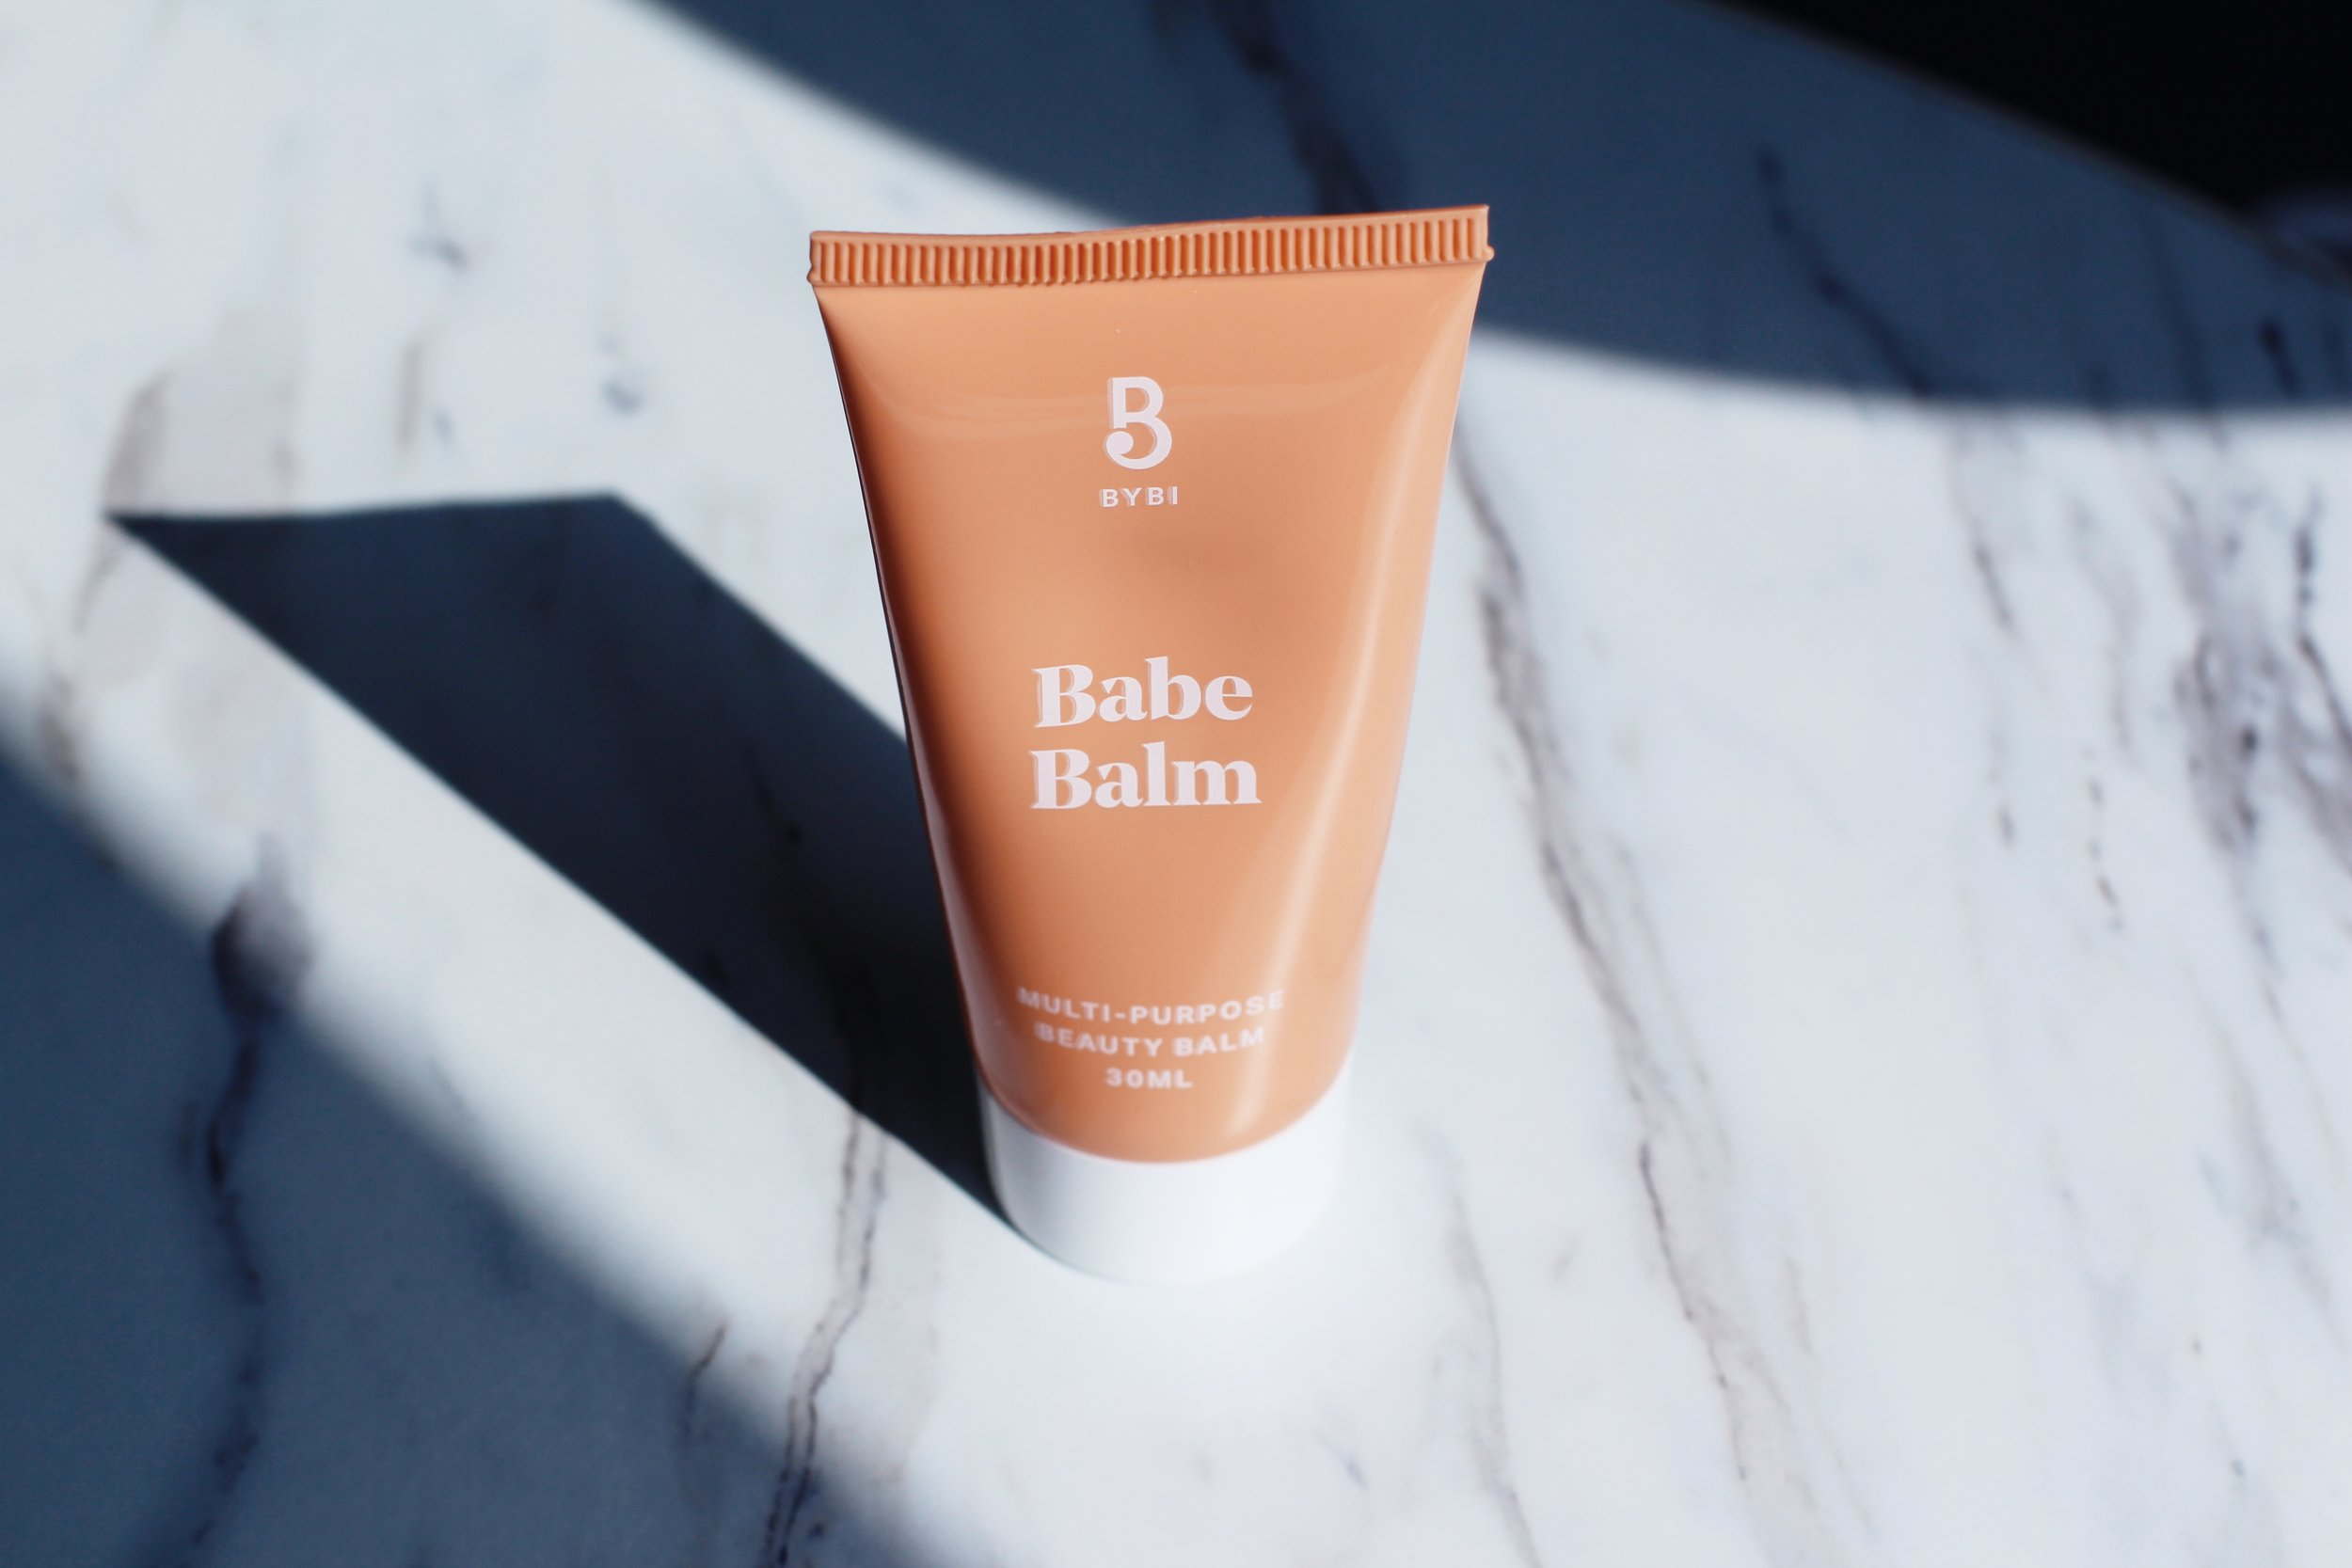 """BABE BALM-MULTI-PURPOSE BEAUTY BALM  TOP 3 USES:  NIGHT CREAM- essential for the face, neck, and chest. Include this in your night routine for super soft and rejuvenated skin.  DEHYDRATION TREATMENT- replenishes areas of the skin that are dry and/or cracked.""""Calendula and hibiscus get to work on dry legs, hands, feet, elbows, knees, bums and tums.""""  HIGHLIGHT ON FLEEK- use this on your cheeks on on the brow bone for an instant natural glow or highlight. Apply to lips or eyelids for a glossy effect. """"It's dreamy creamy texture means you can even mix with your mineral makeup to create bespoke blushes and stains."""""""